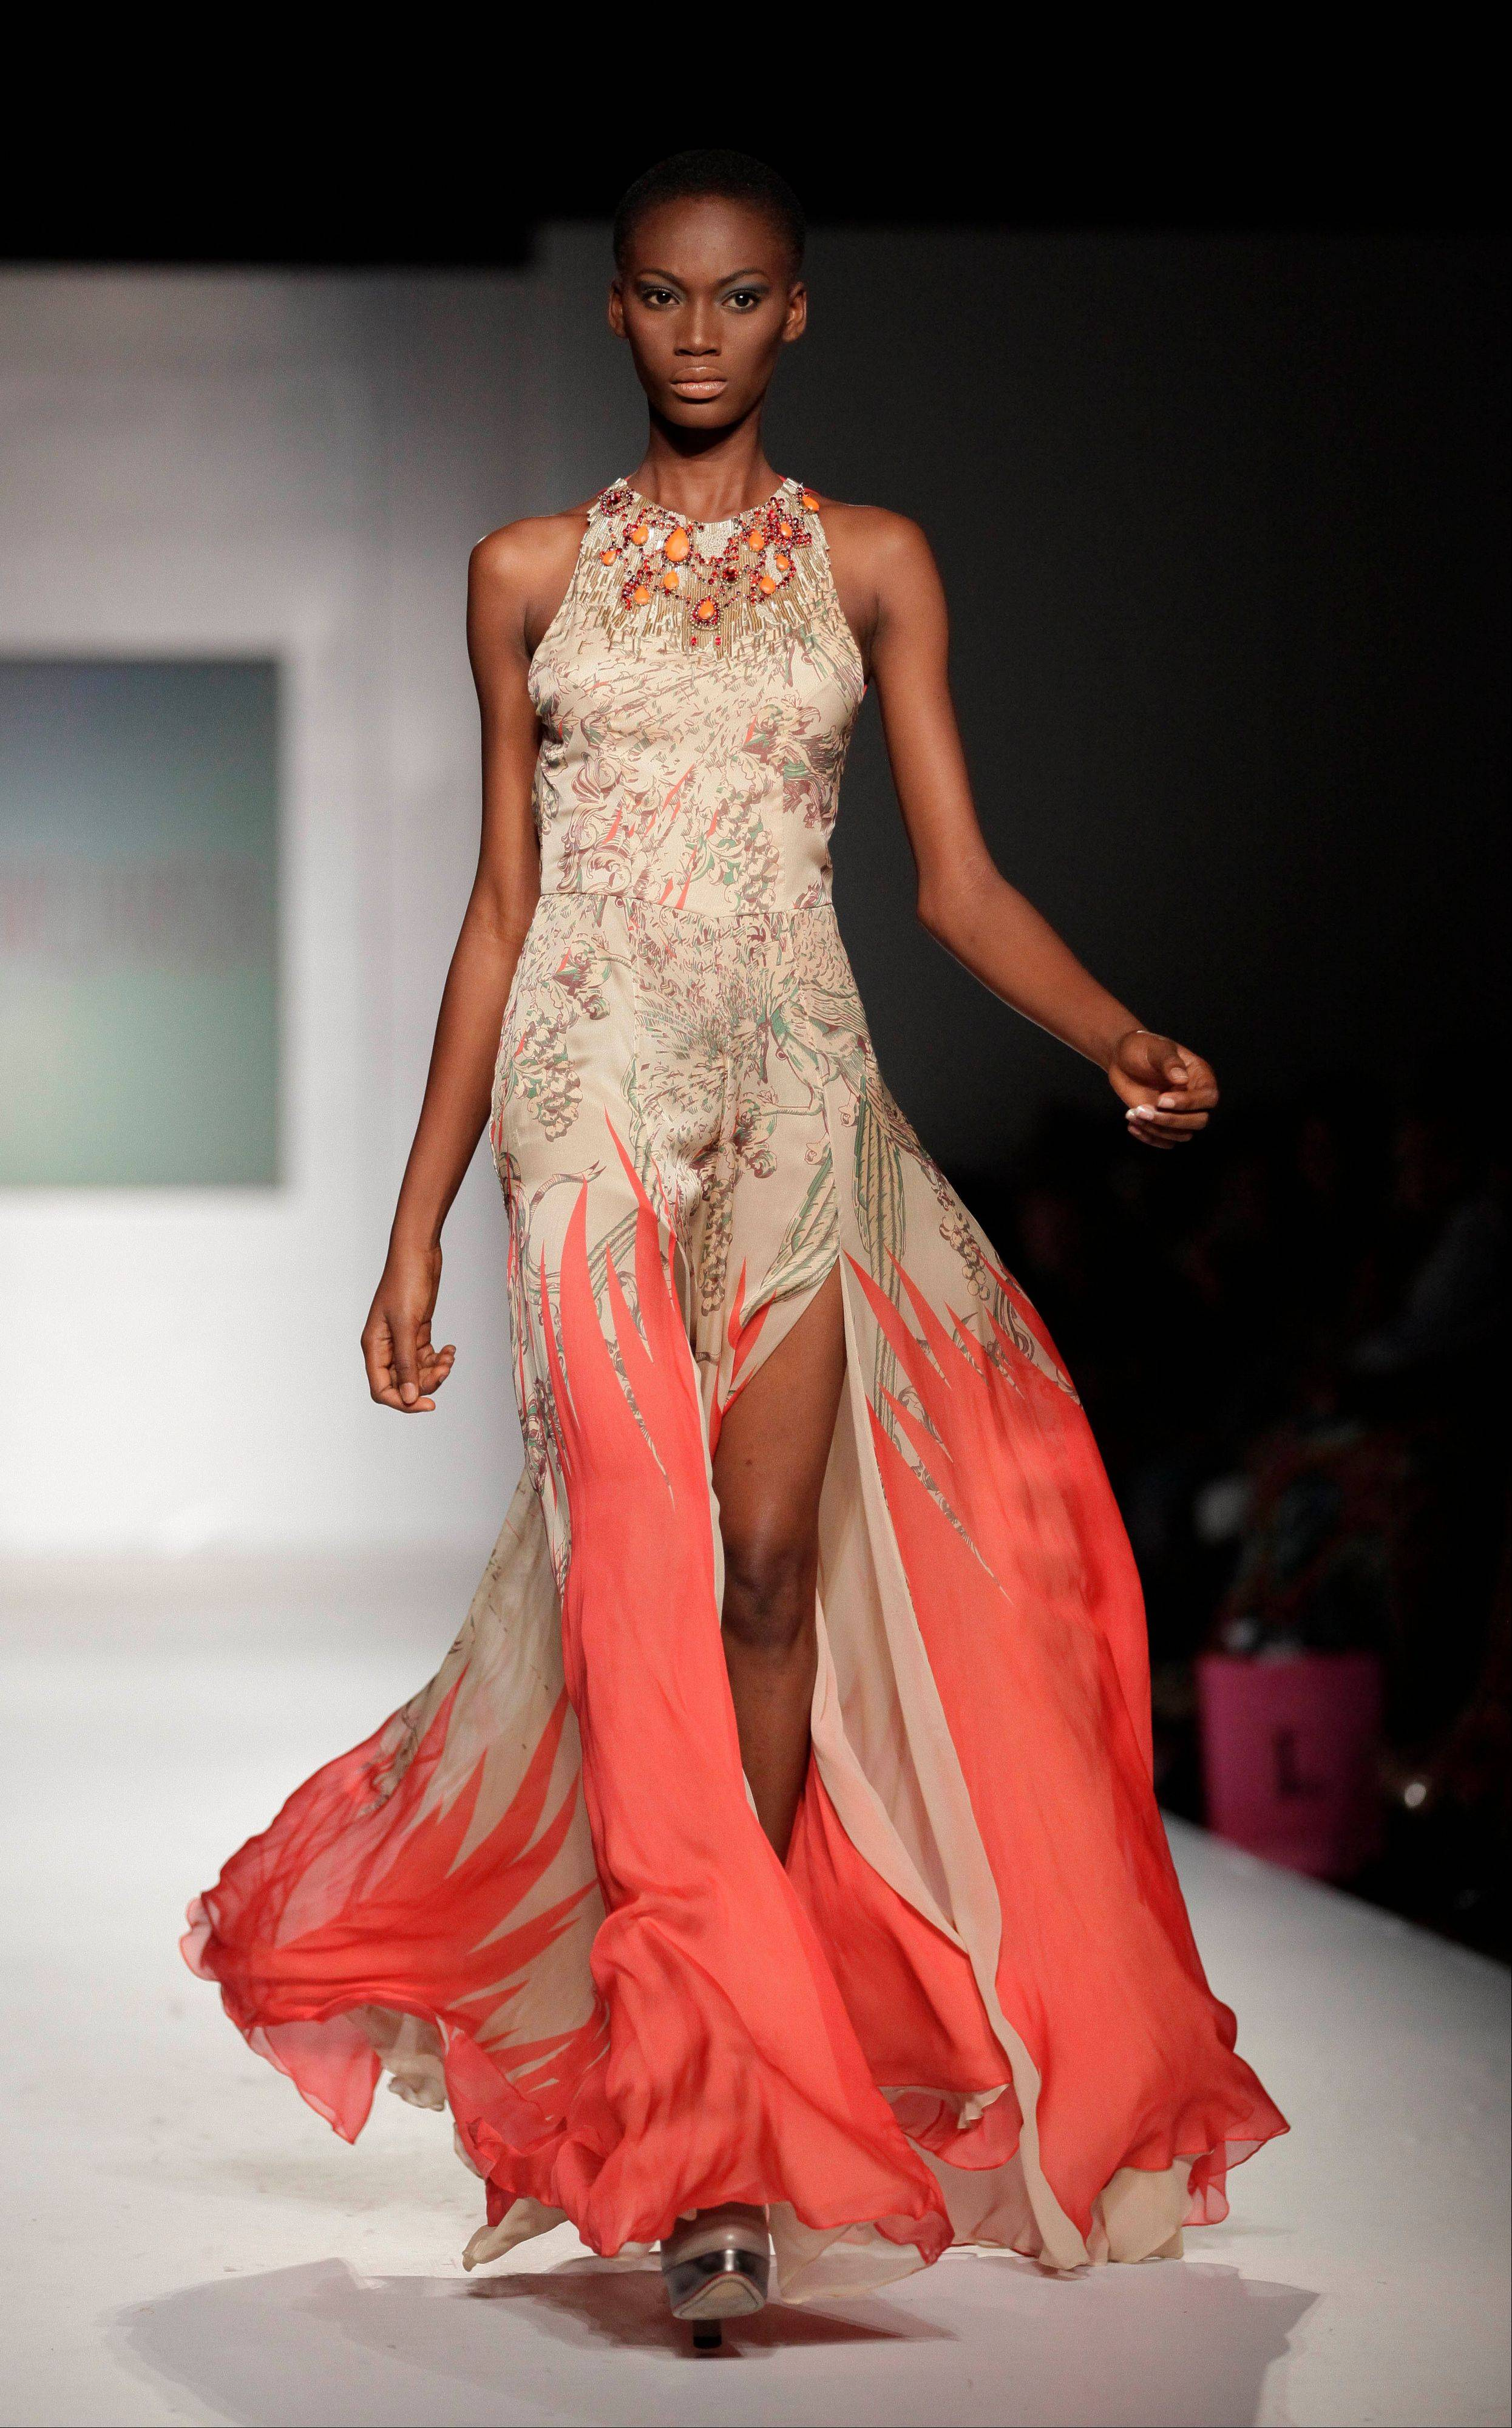 In this photo taken Saturday, Oct. 27, 2012, a model displays an outfit by British designer Matthew Williamson in Lagos, Nigeria. Some international high-end fashion buyers are looking beyond Nigeria's bleak headlines to uncover the next big new thing, fun and glamour through its use of print and color, characteristics which have come to define the vibrant local fashion scene.